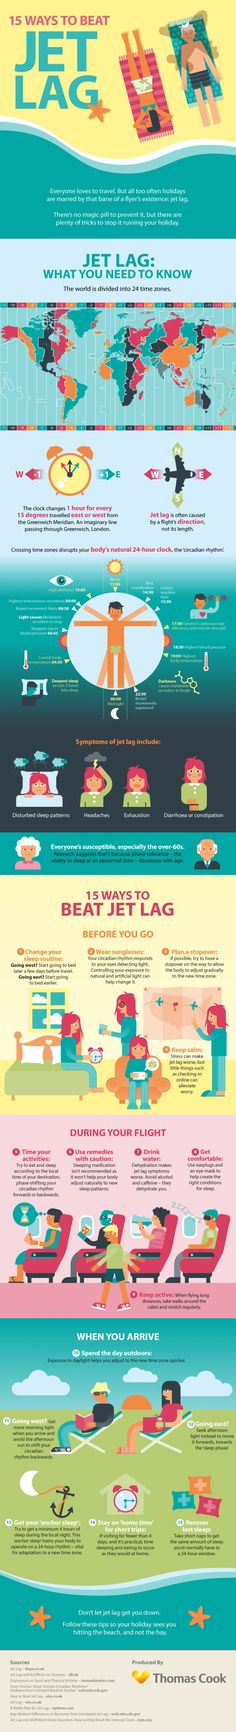 Taking a trip abroad this summer? Here are 15 Ways to Beat Jet Lag. #TravelTips #InternationalTravel